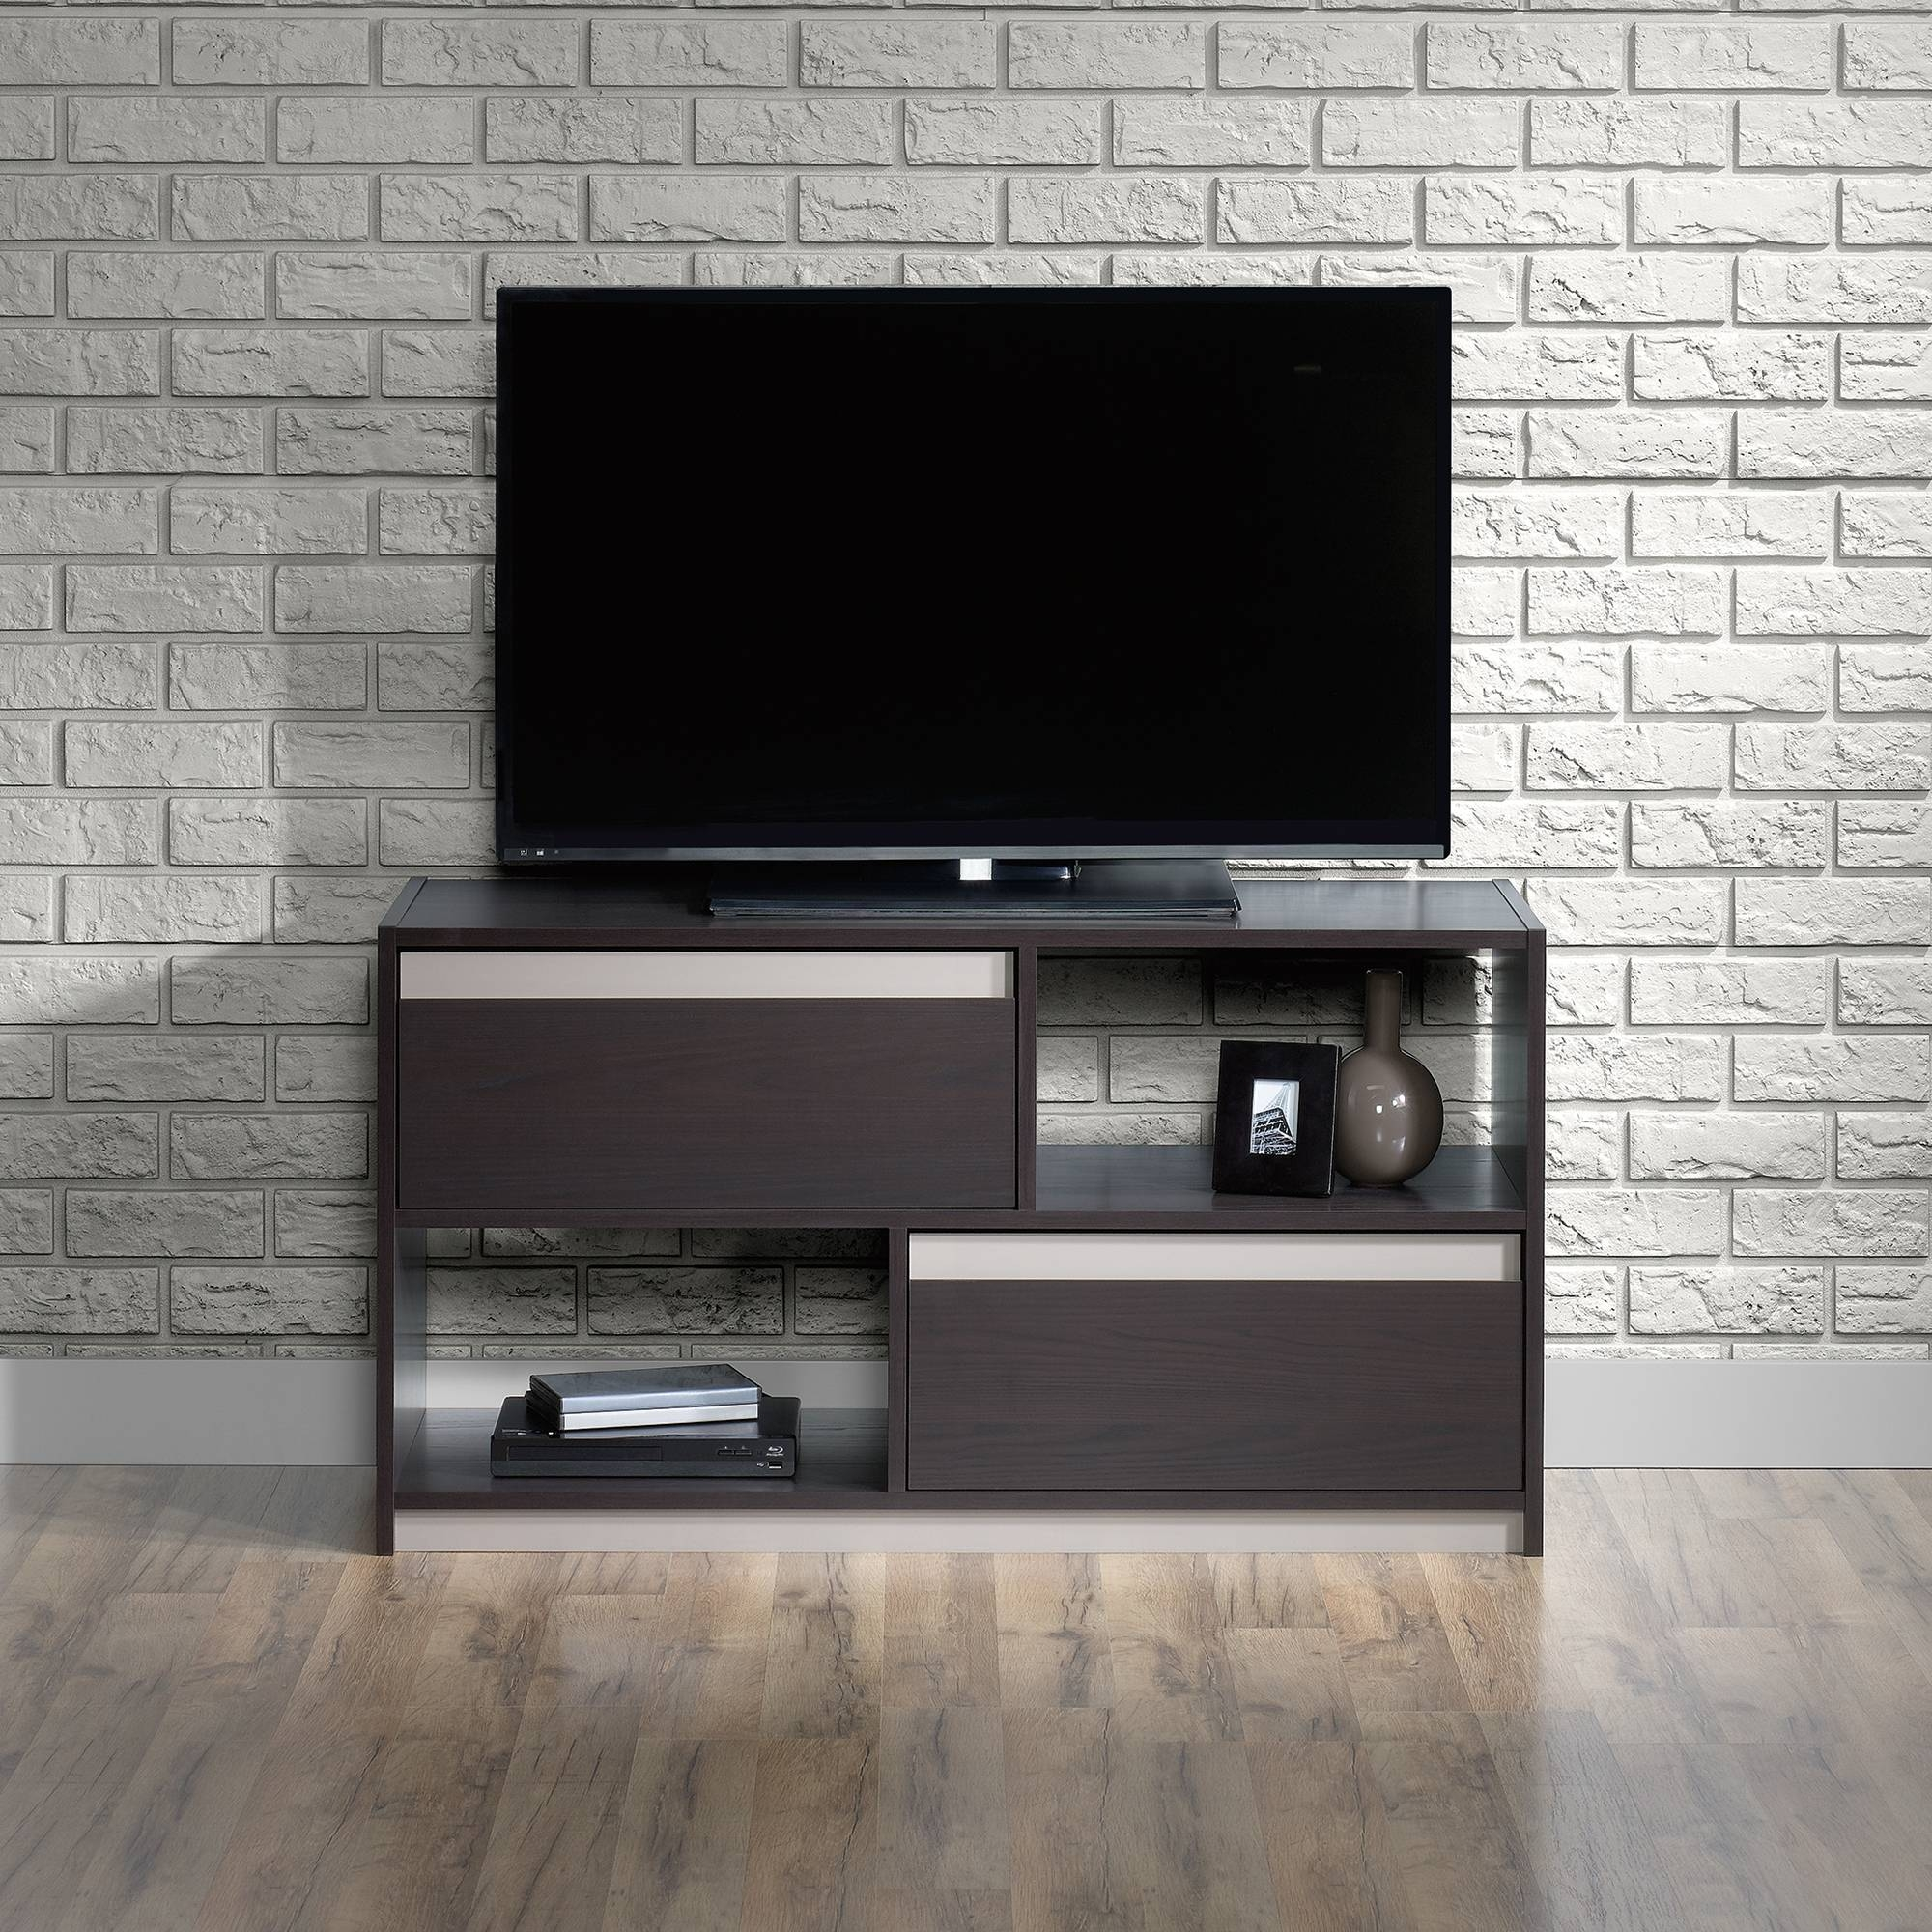 Square1 | Tv Stand | 418503 | Sauder Pertaining To Square Tv Stands (View 13 of 15)